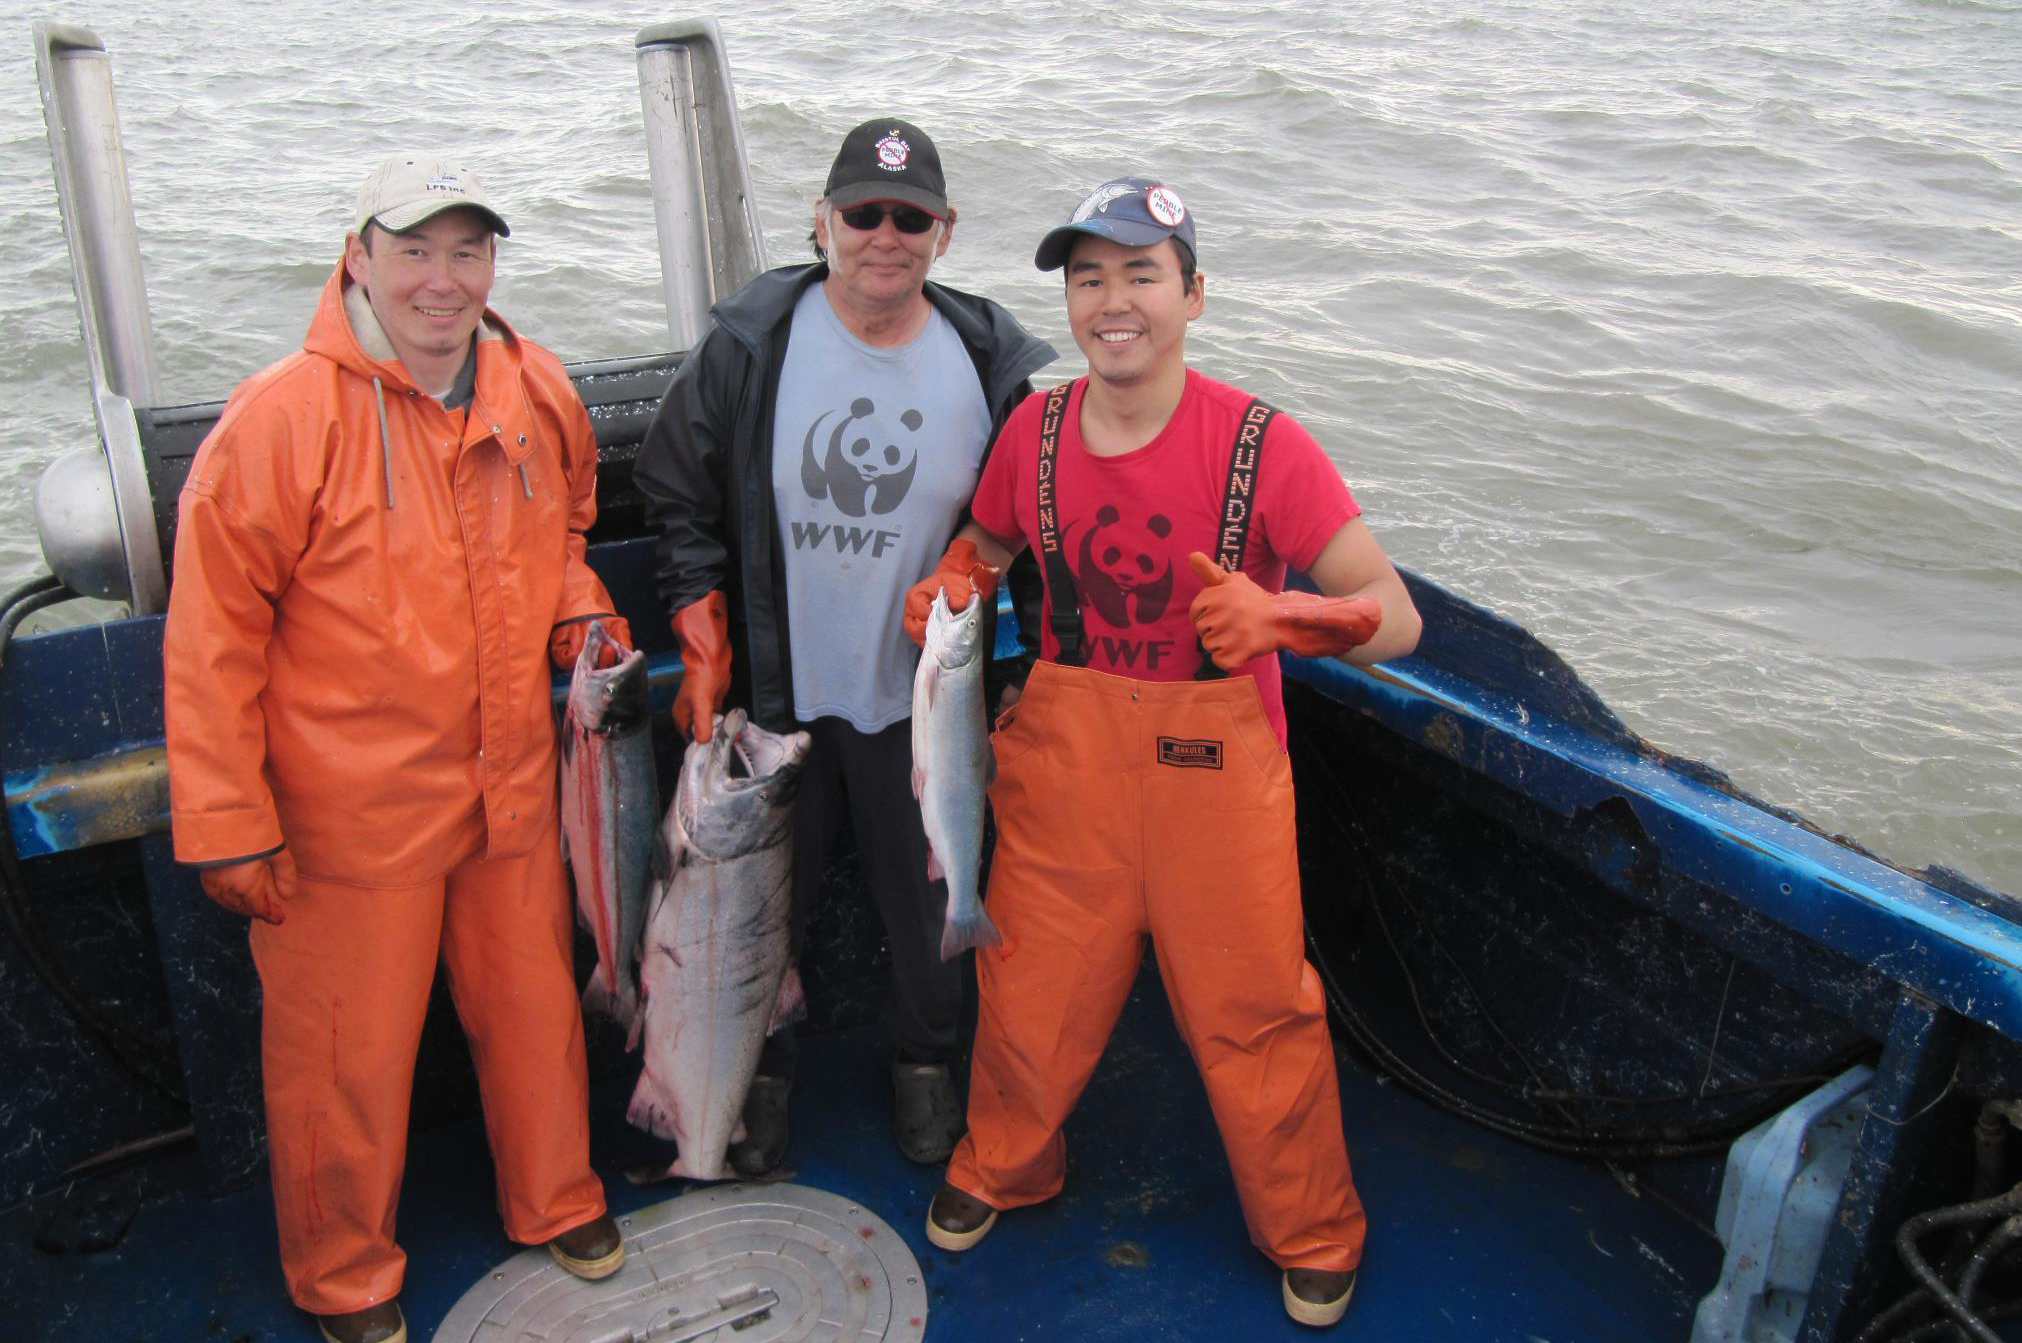 Alaska Job Center Network - The Seafood and Fishing jobs page on the Alaska Job Center Network website offers educational resources for incoming fishermen and a link to Alexys where you can tailor your job search to specific ports and fisheries. Educational resources provided on this site can be helpful for background information on fishery-related careers. Links range from information on Alaskan Fishing and Seafood jobs in Alaska, to vessel and processing jobs.